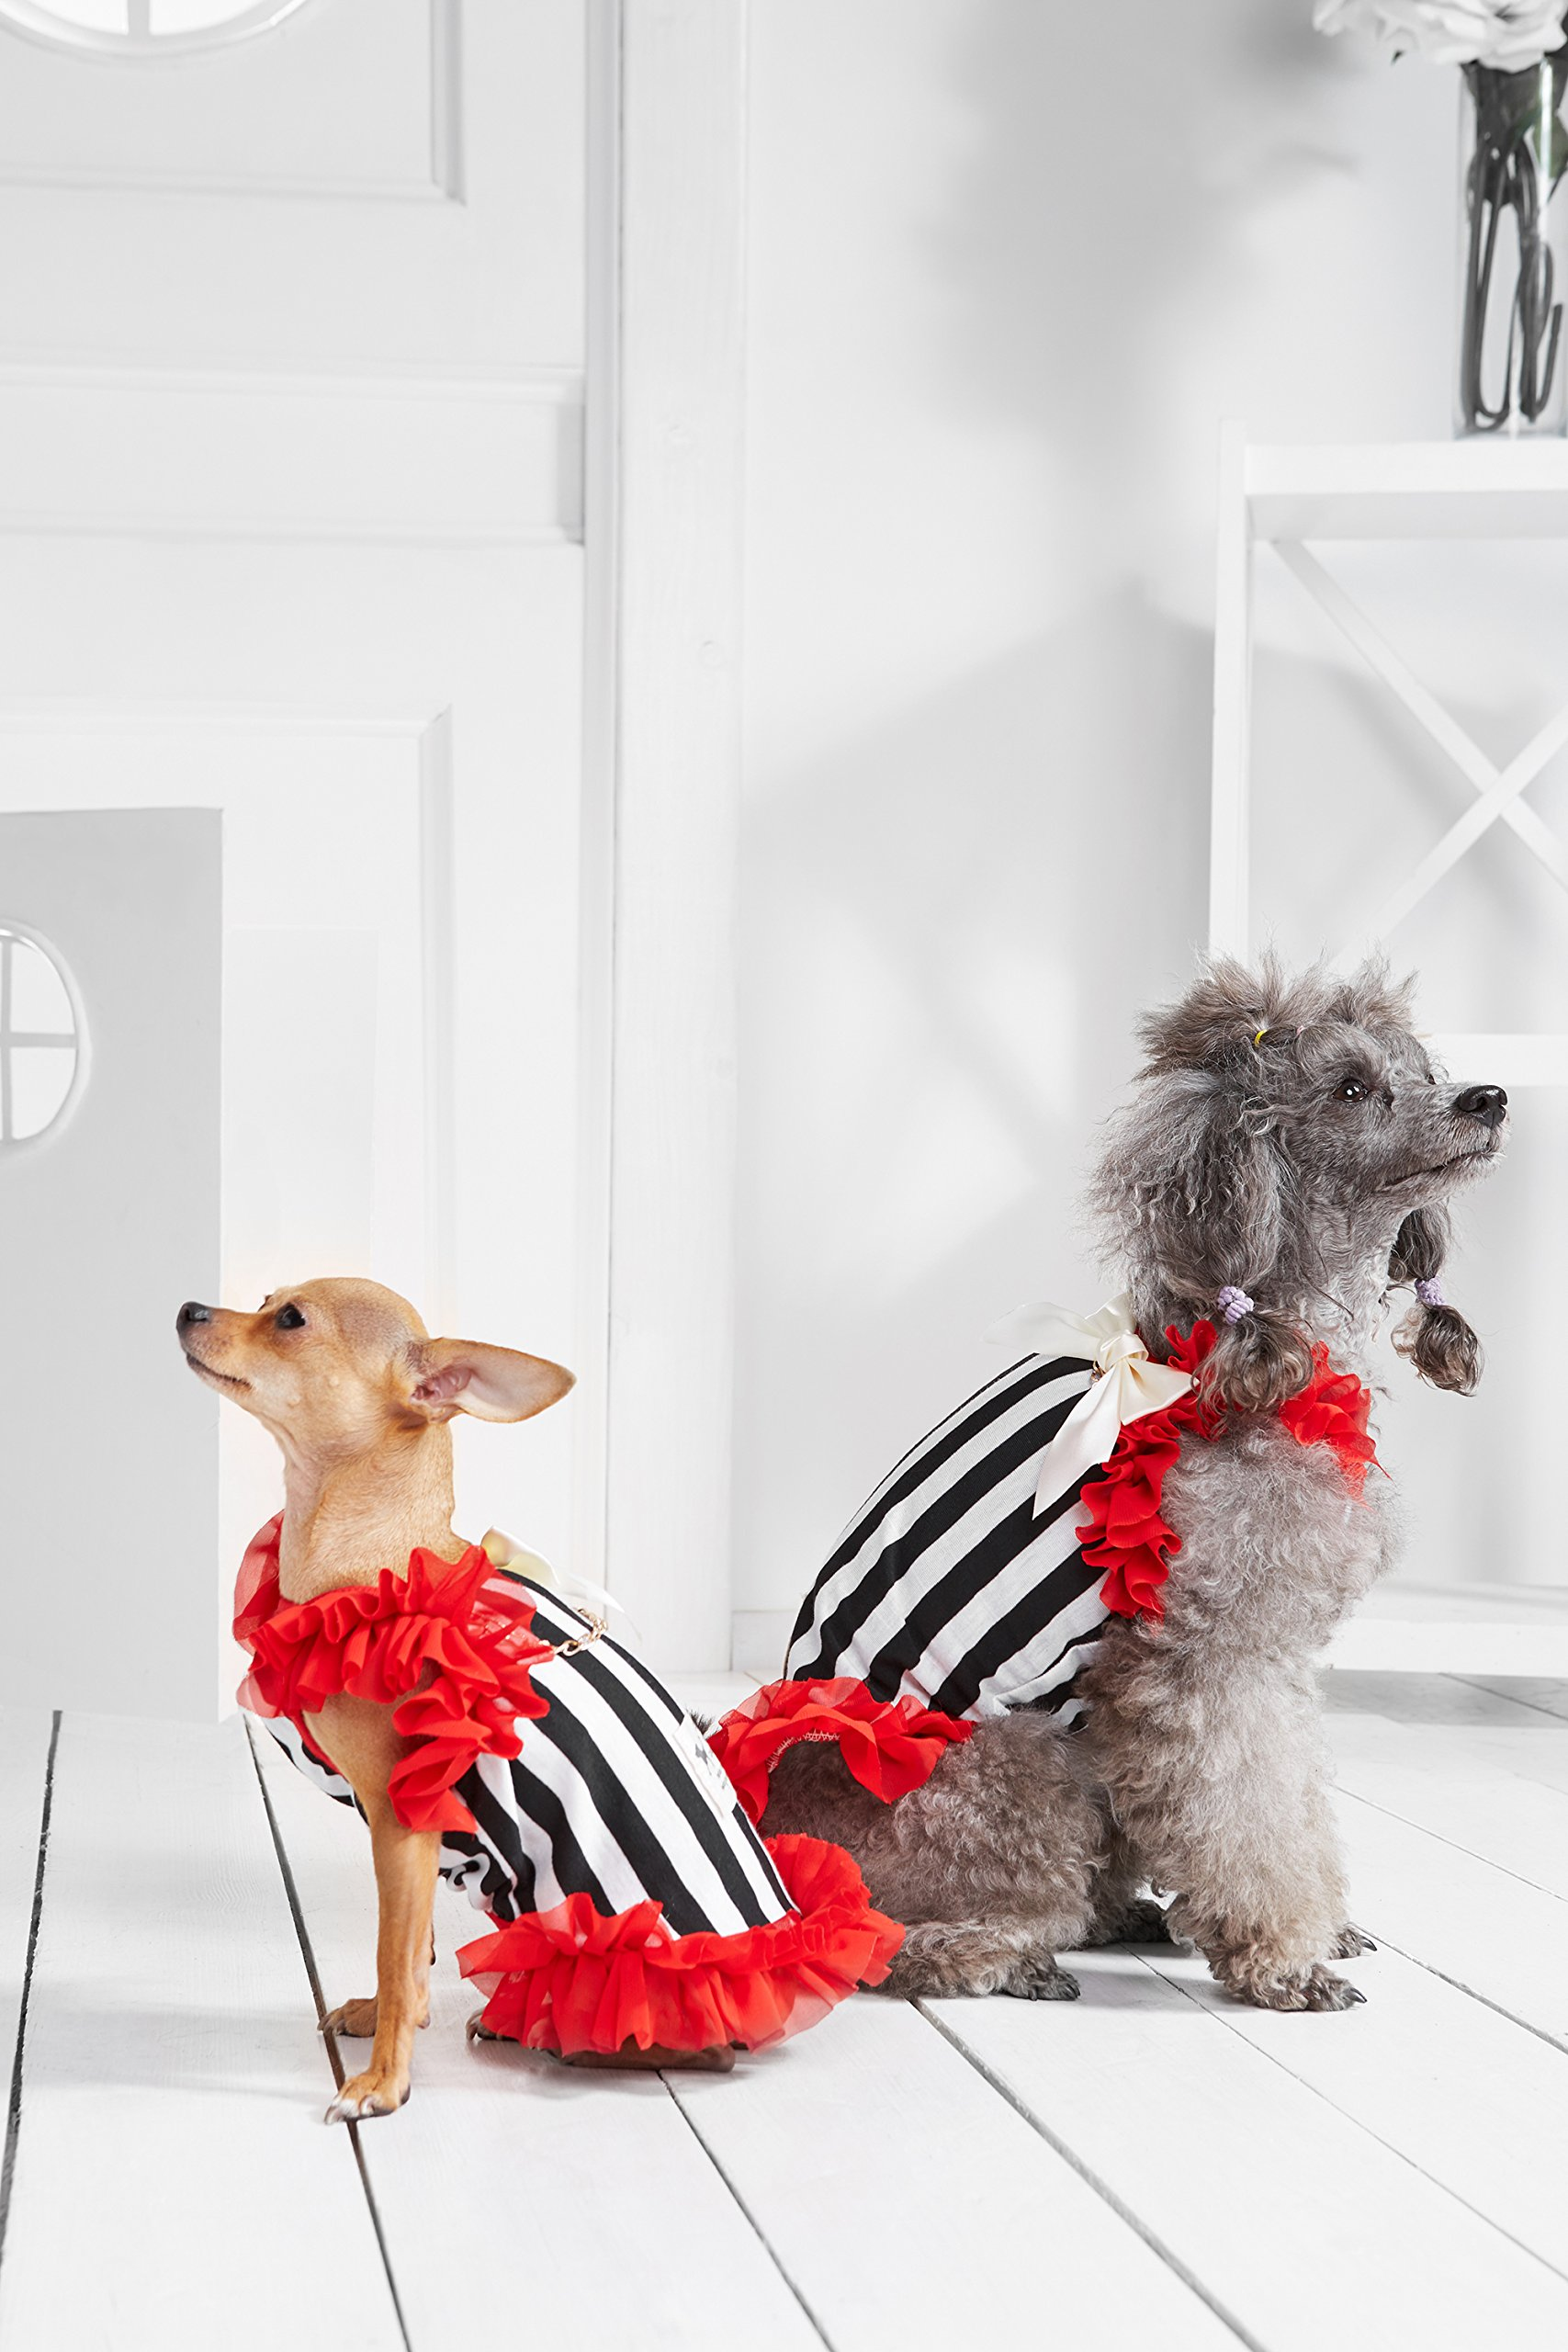 """Small Dog Striped Dress With Ruffles Satin Bow Chain Dogs Cotton Summer Clothes (Toy Plus: 10"""" / 5-9 lbs, Red, Black, White) by Nothing But Love Pets (Image #1)"""